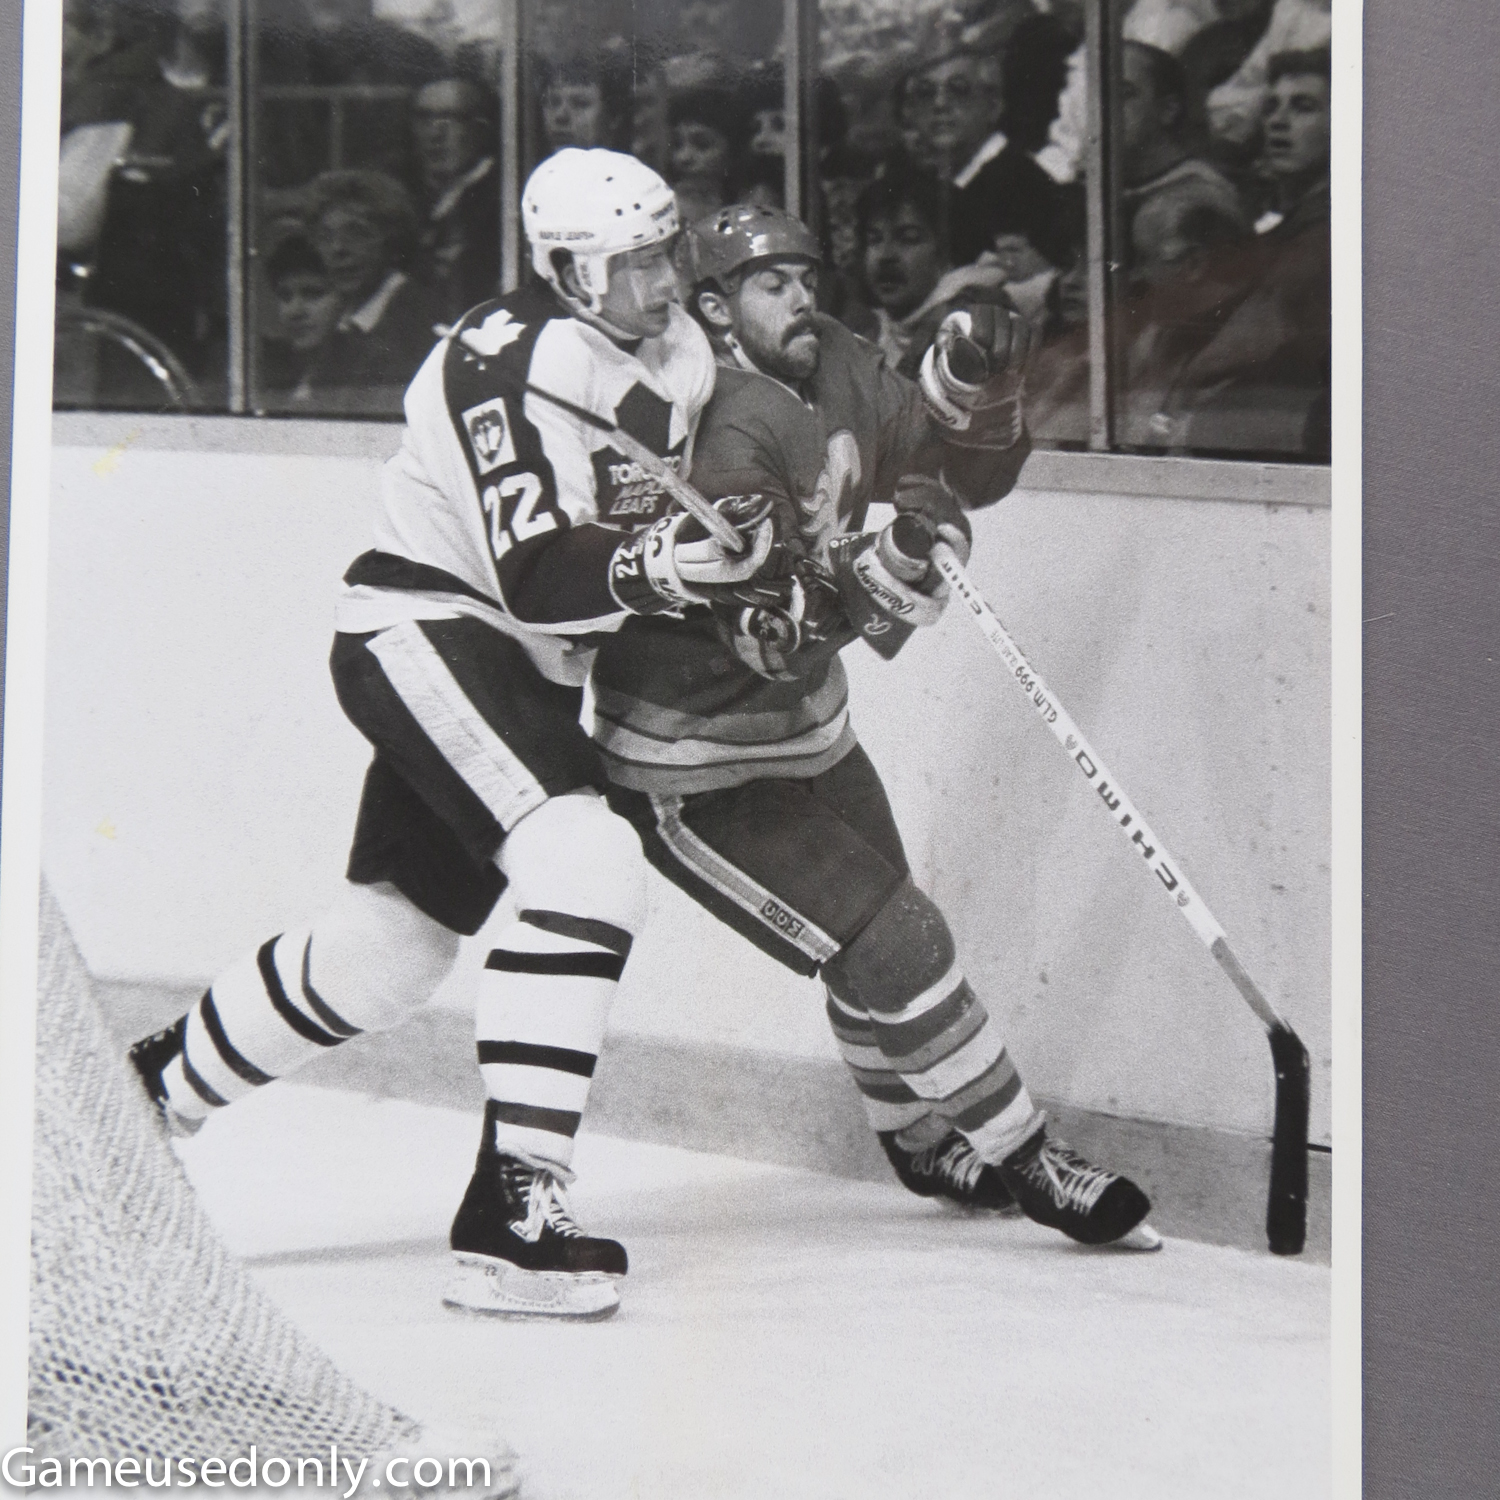 1986-Maple-Leafs-Photo-Matched-Jersey